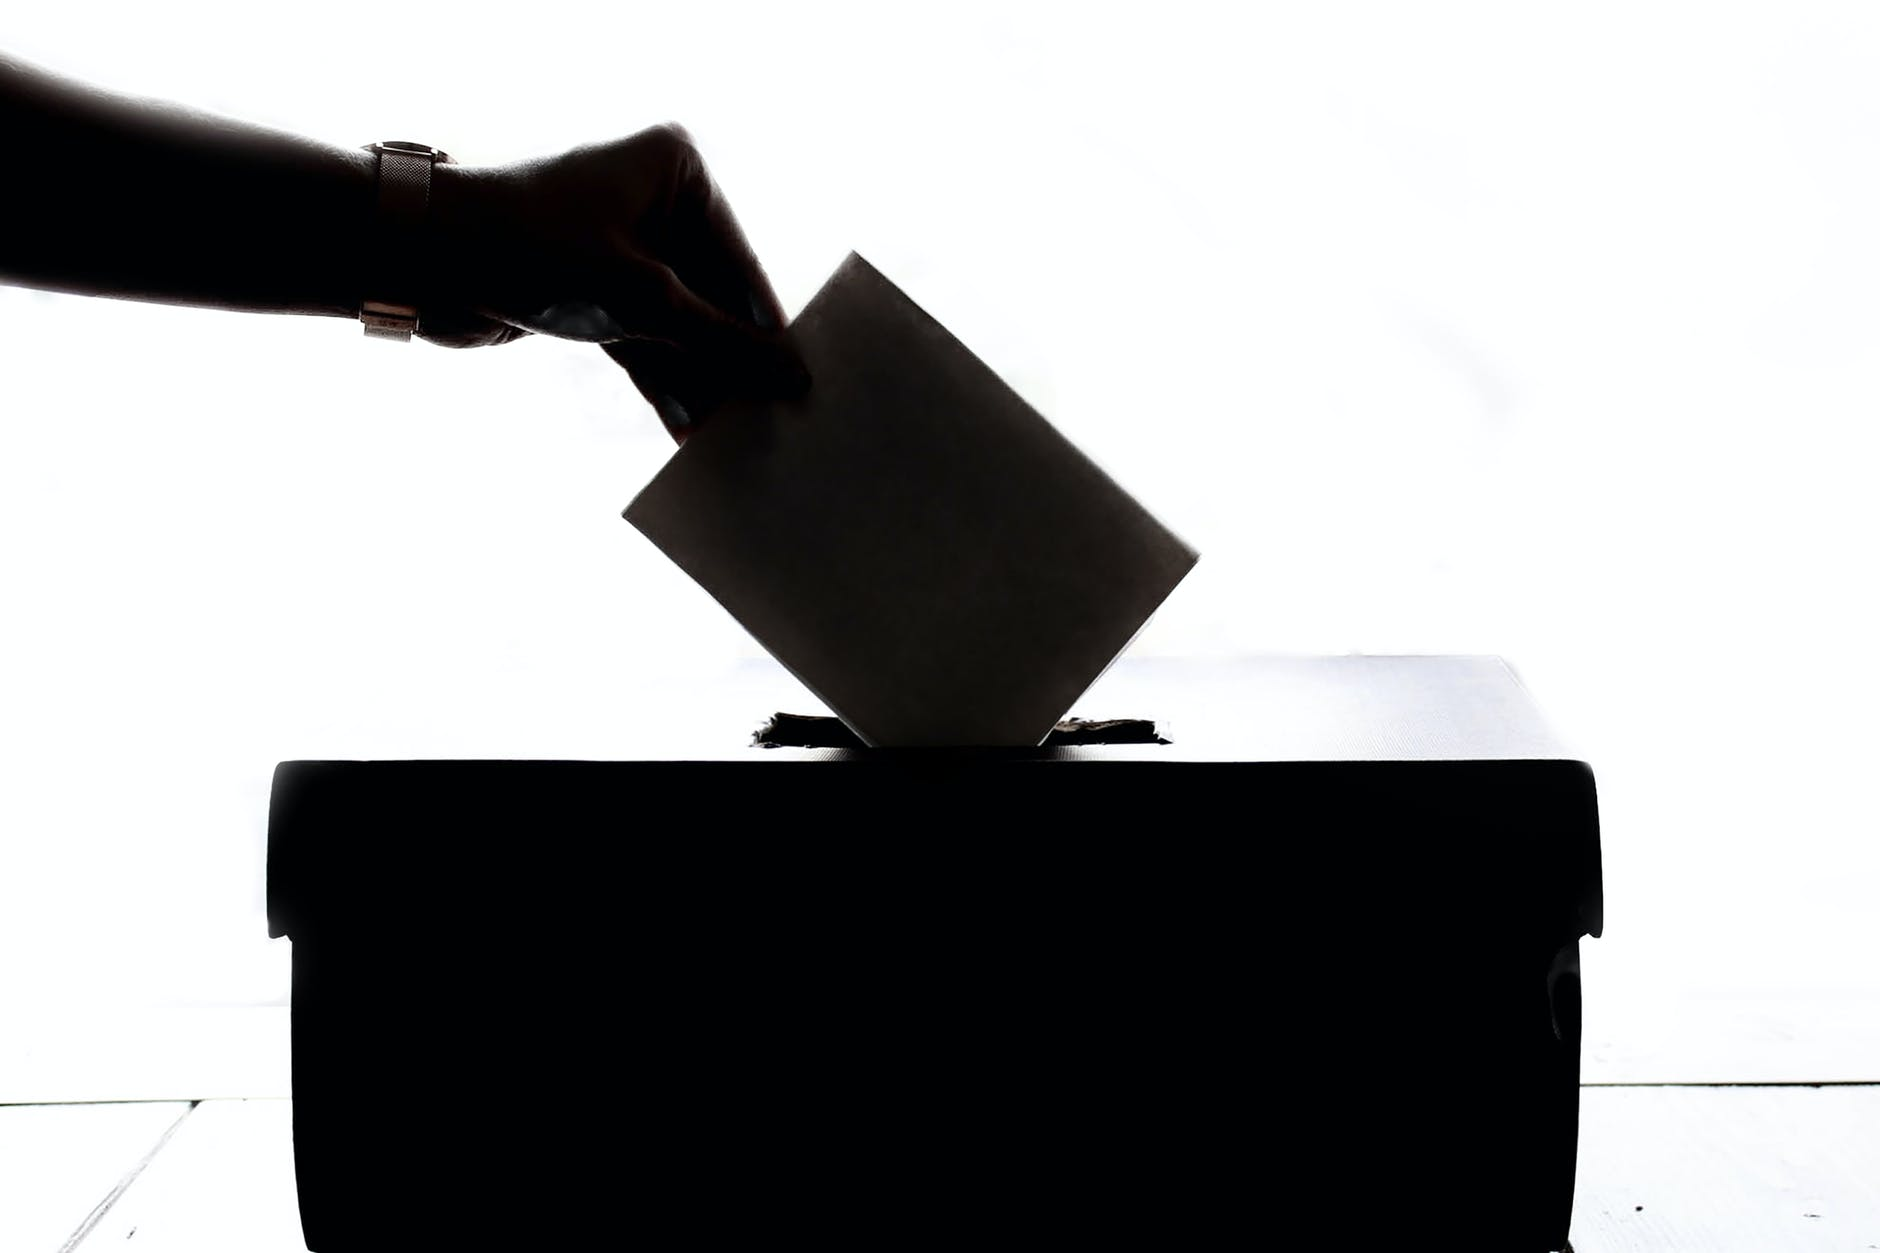 Television leads less-informed citizens to vote based on candidates' appearance